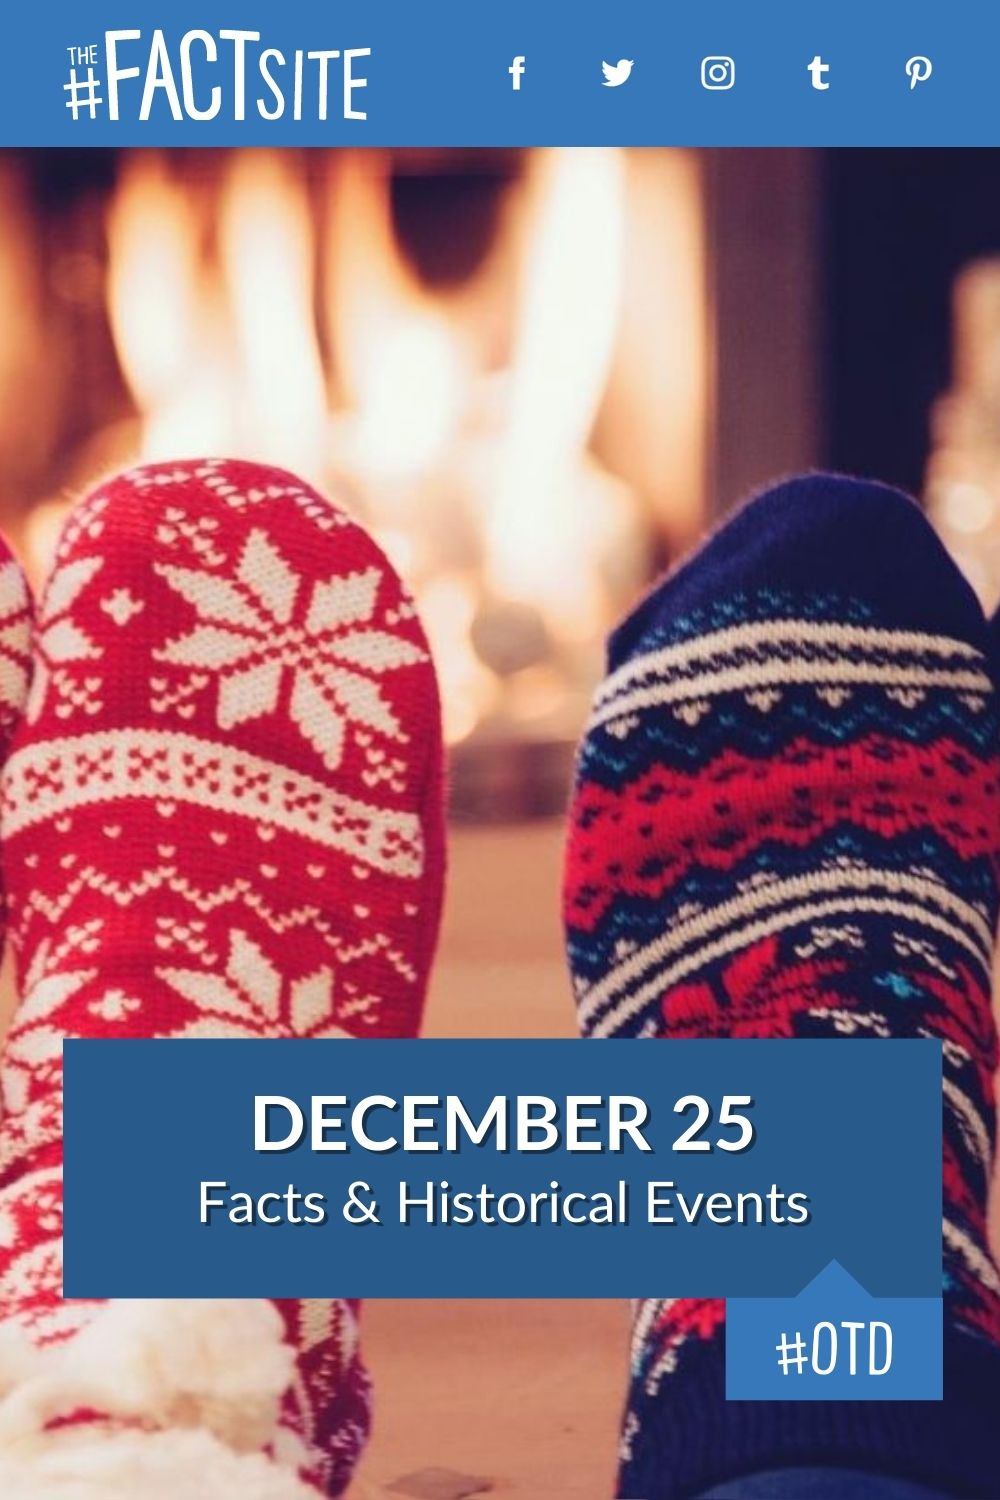 Facts & Historic Events That Happened on December 25